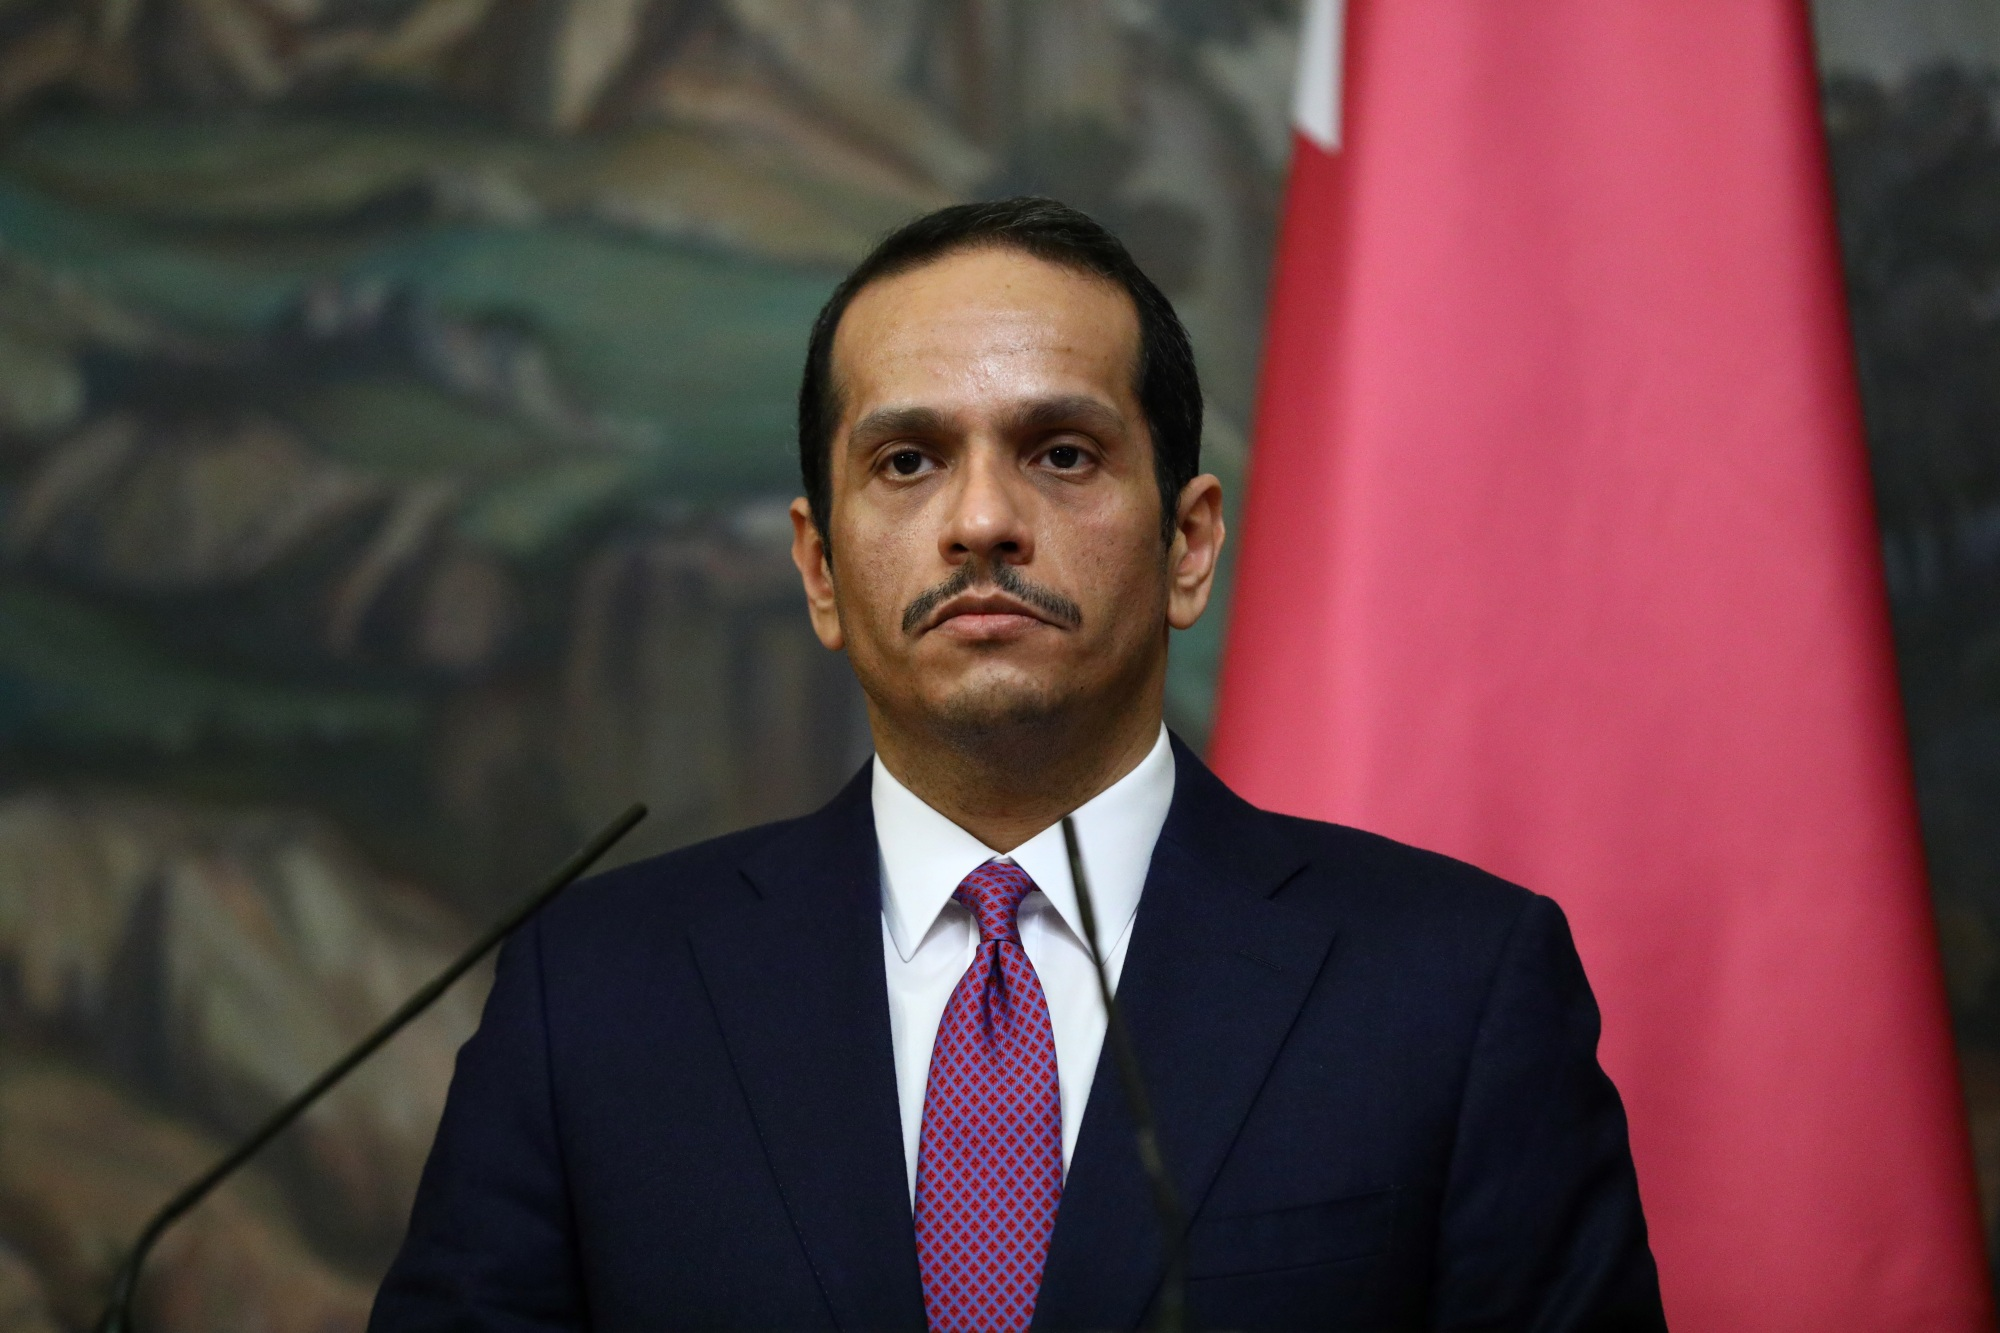 Qatar minister calls on Gulf states to hold talks with Iran